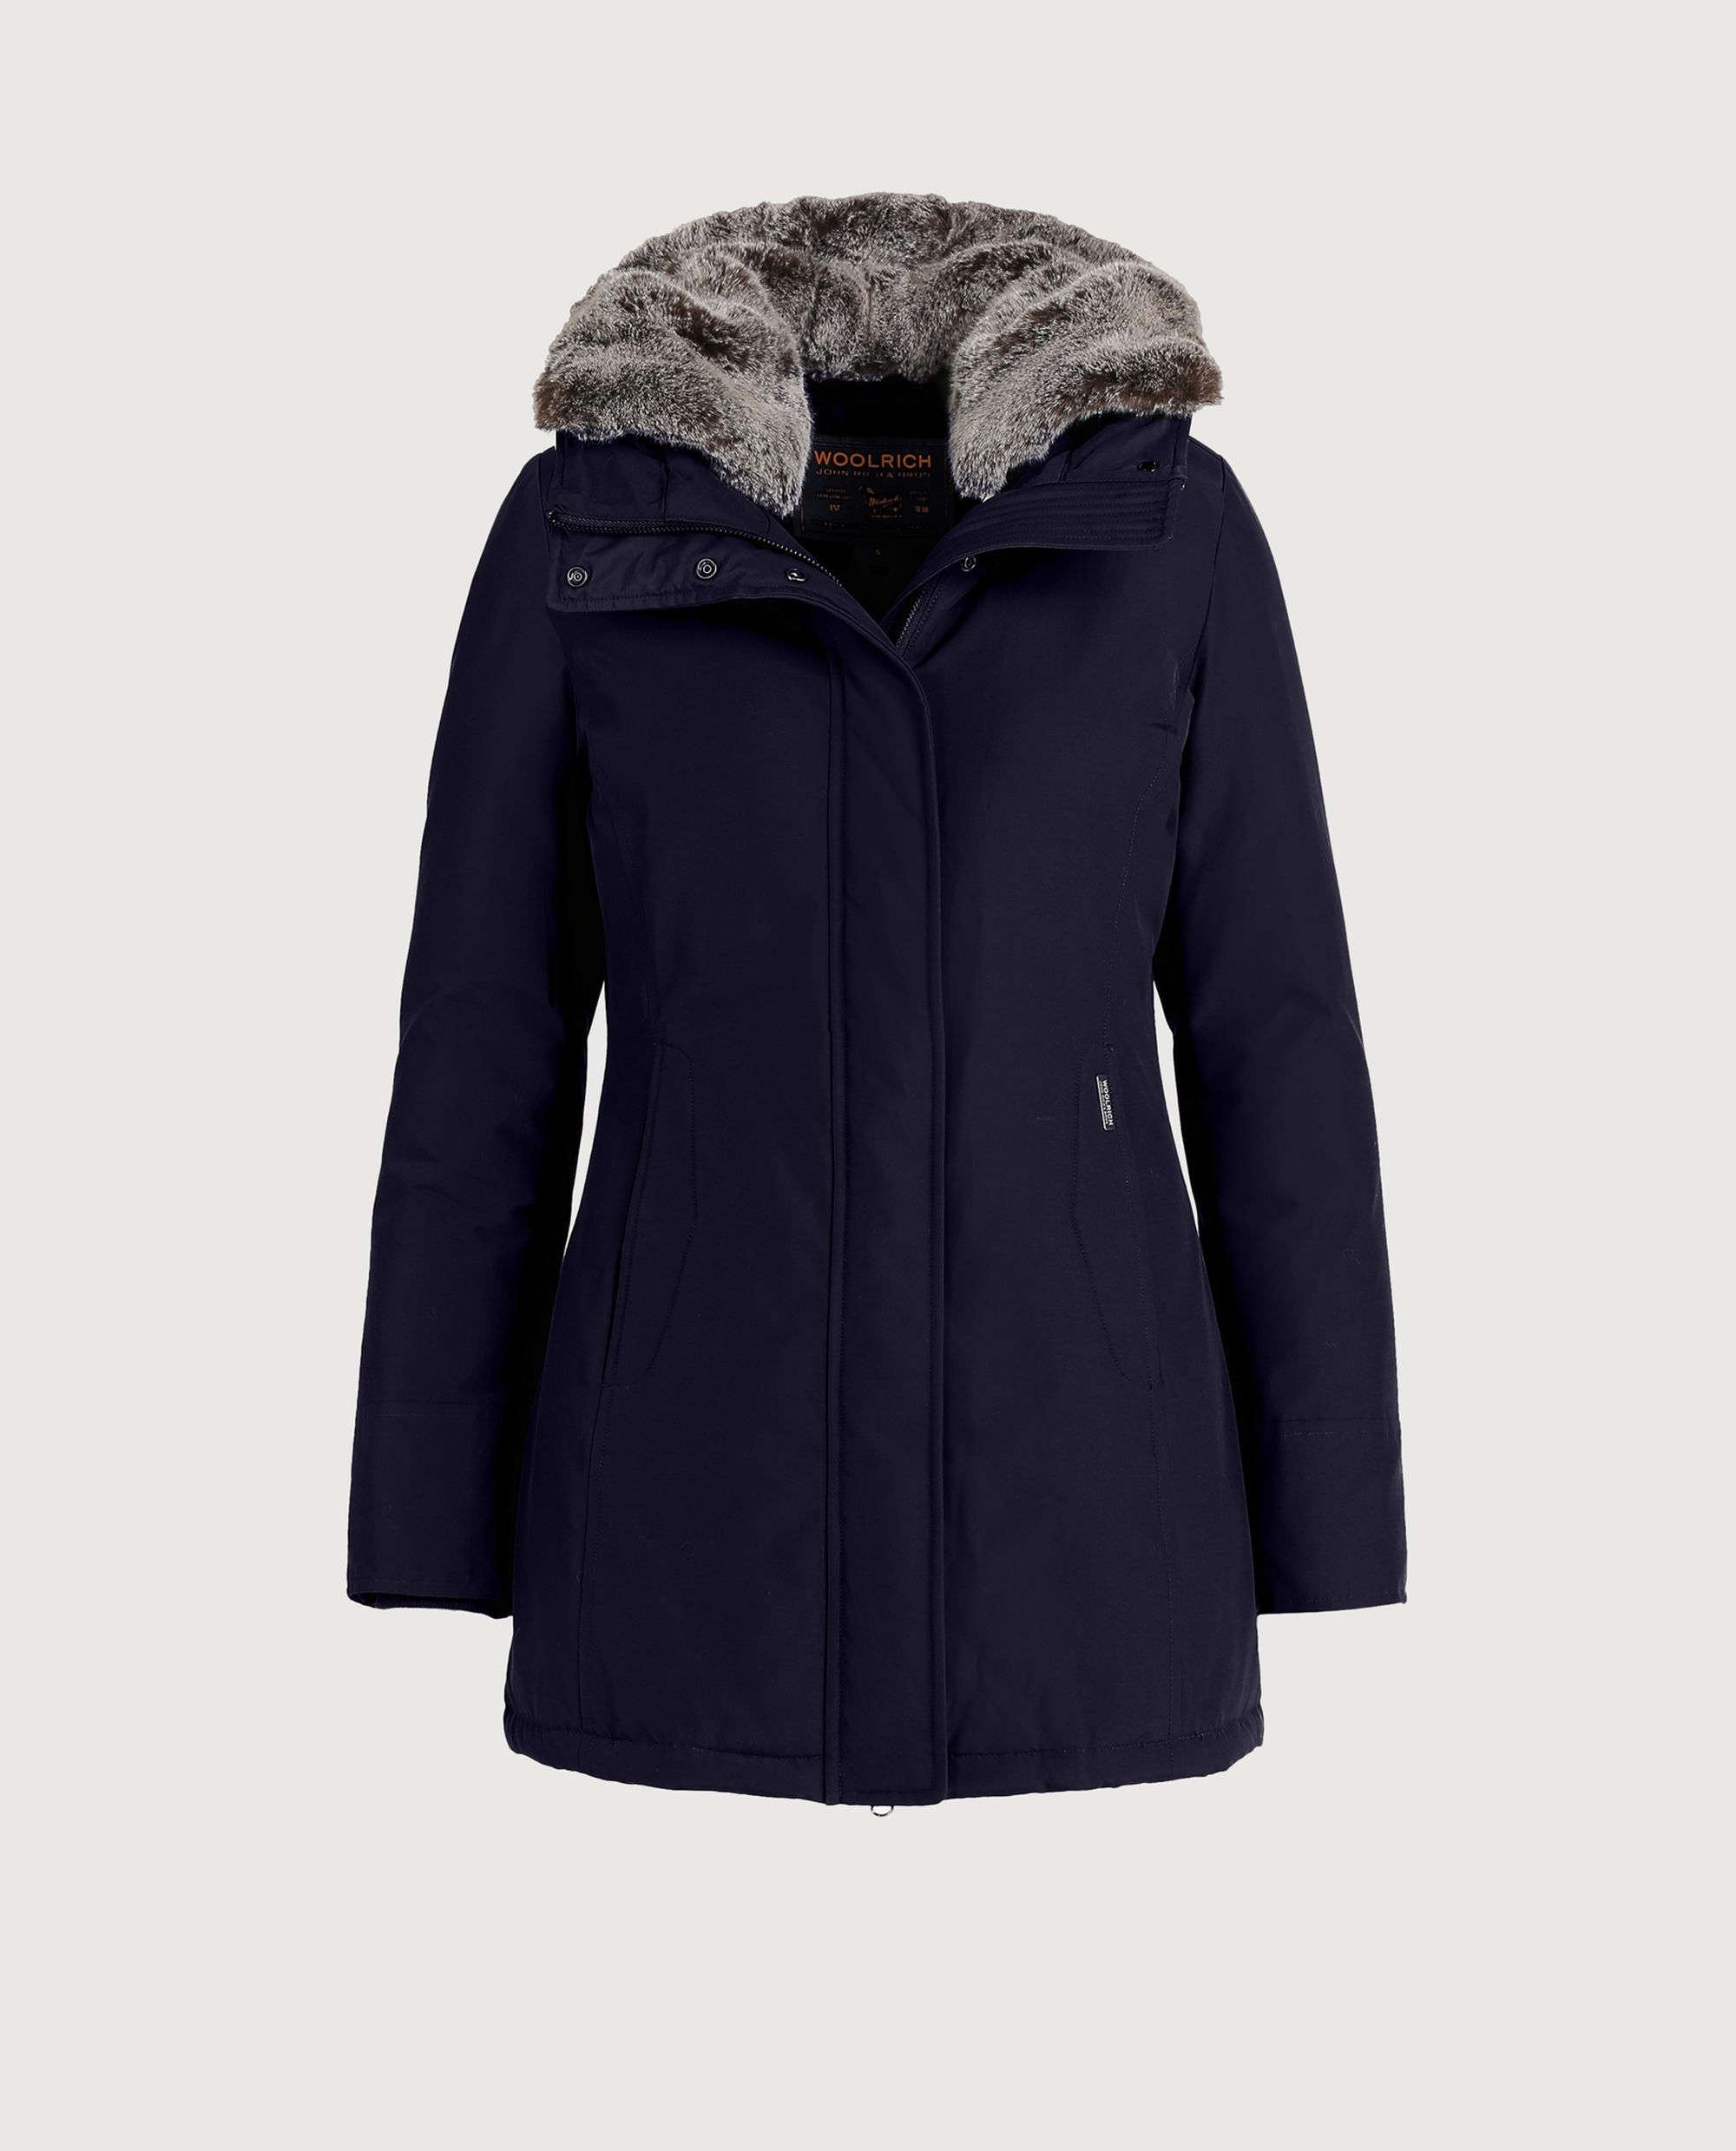 Giacca donna WOOLRICH W'S BOULDER PARKA